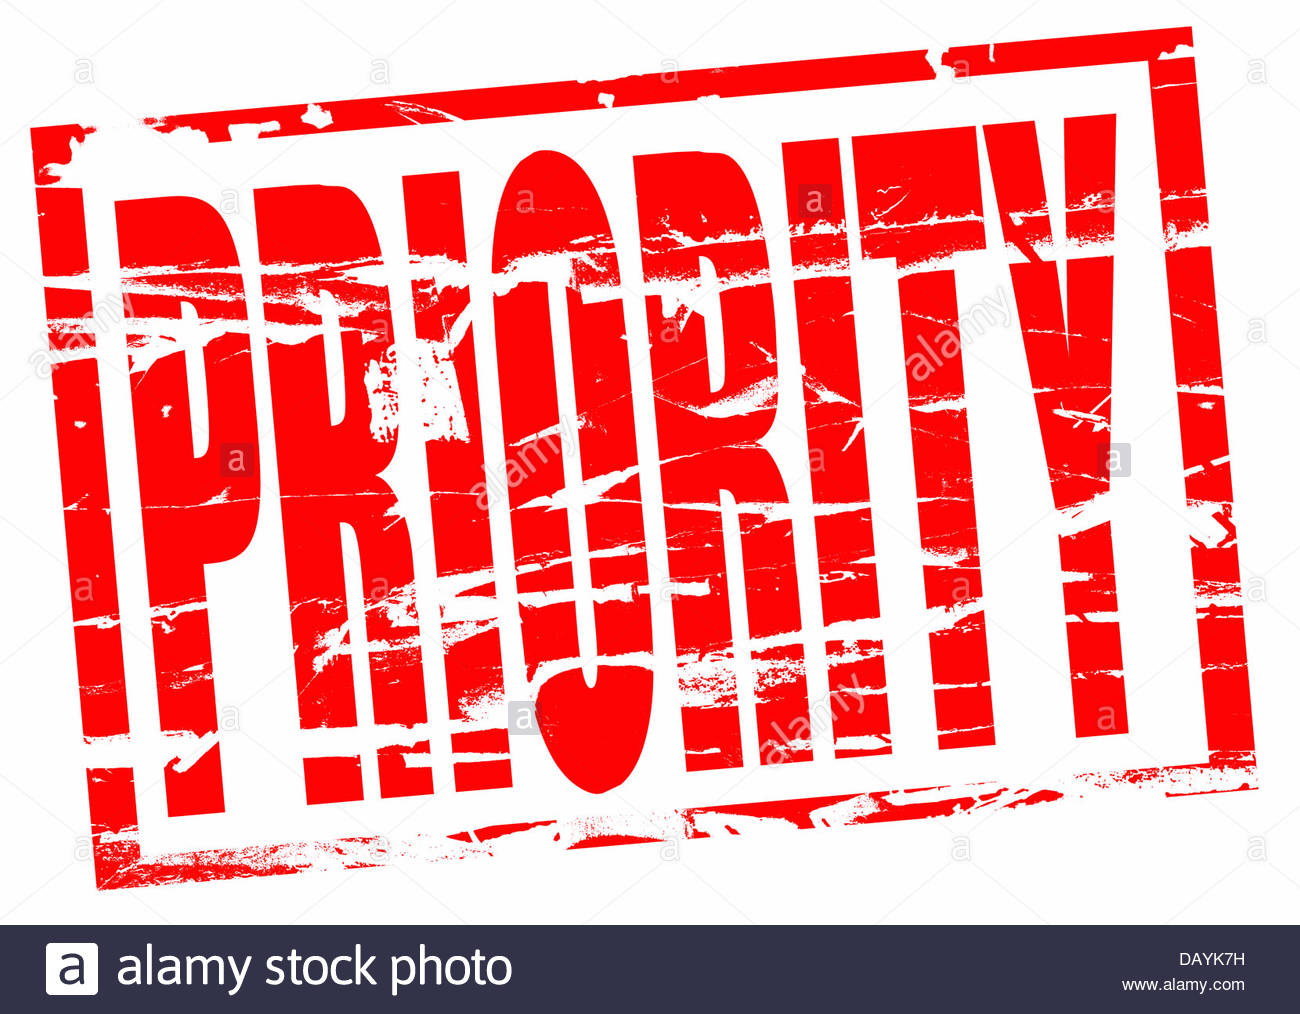 Digital composite Rubber stamp. Priority - Stock Image